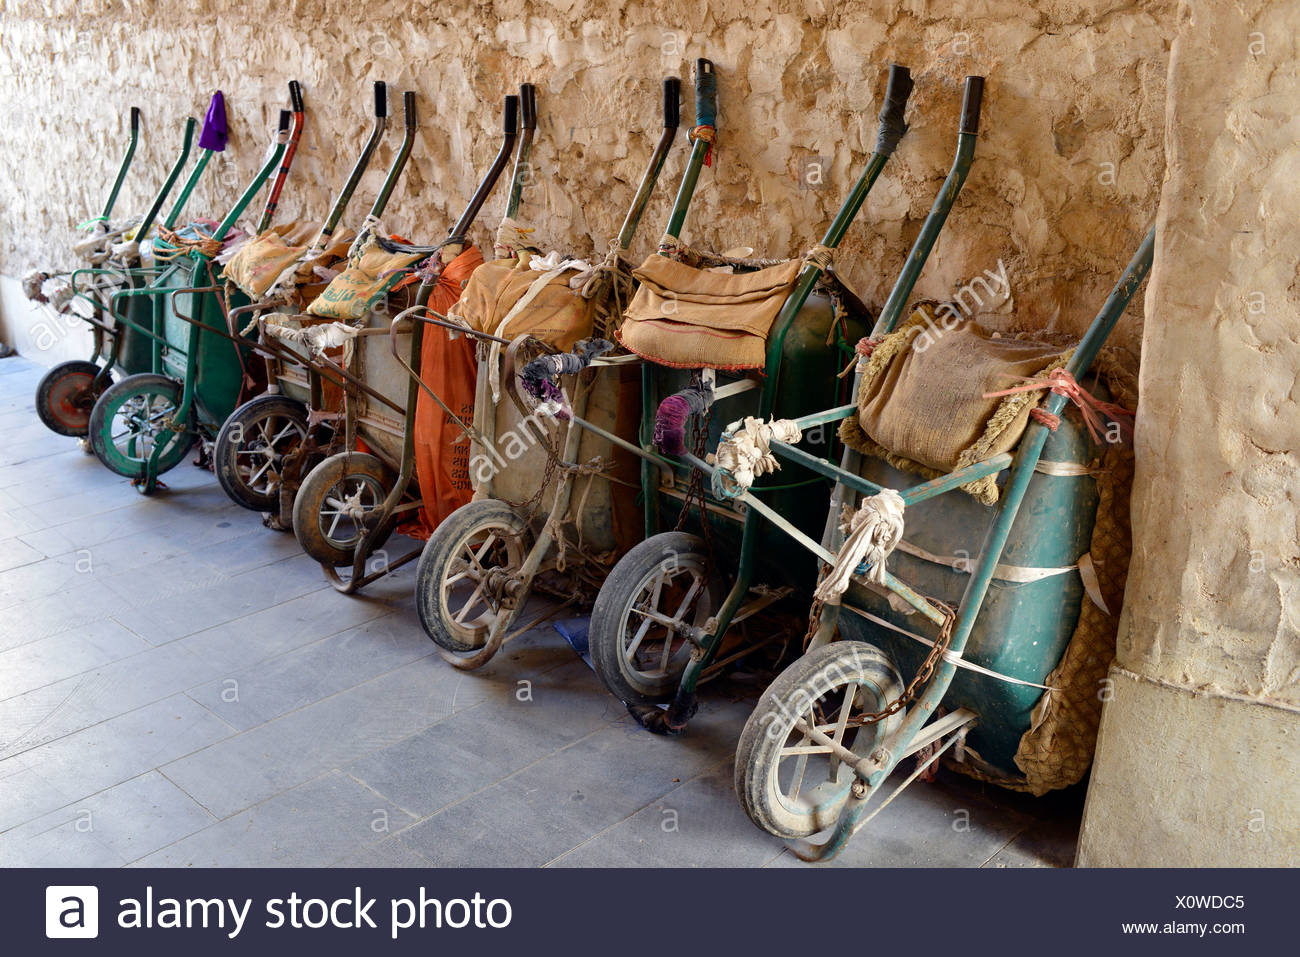 Parking for wheelbarrows, push carts, main means of transport in the Souq al Waqif, oldest souq or bazaar in the country, Doha Stock Photo